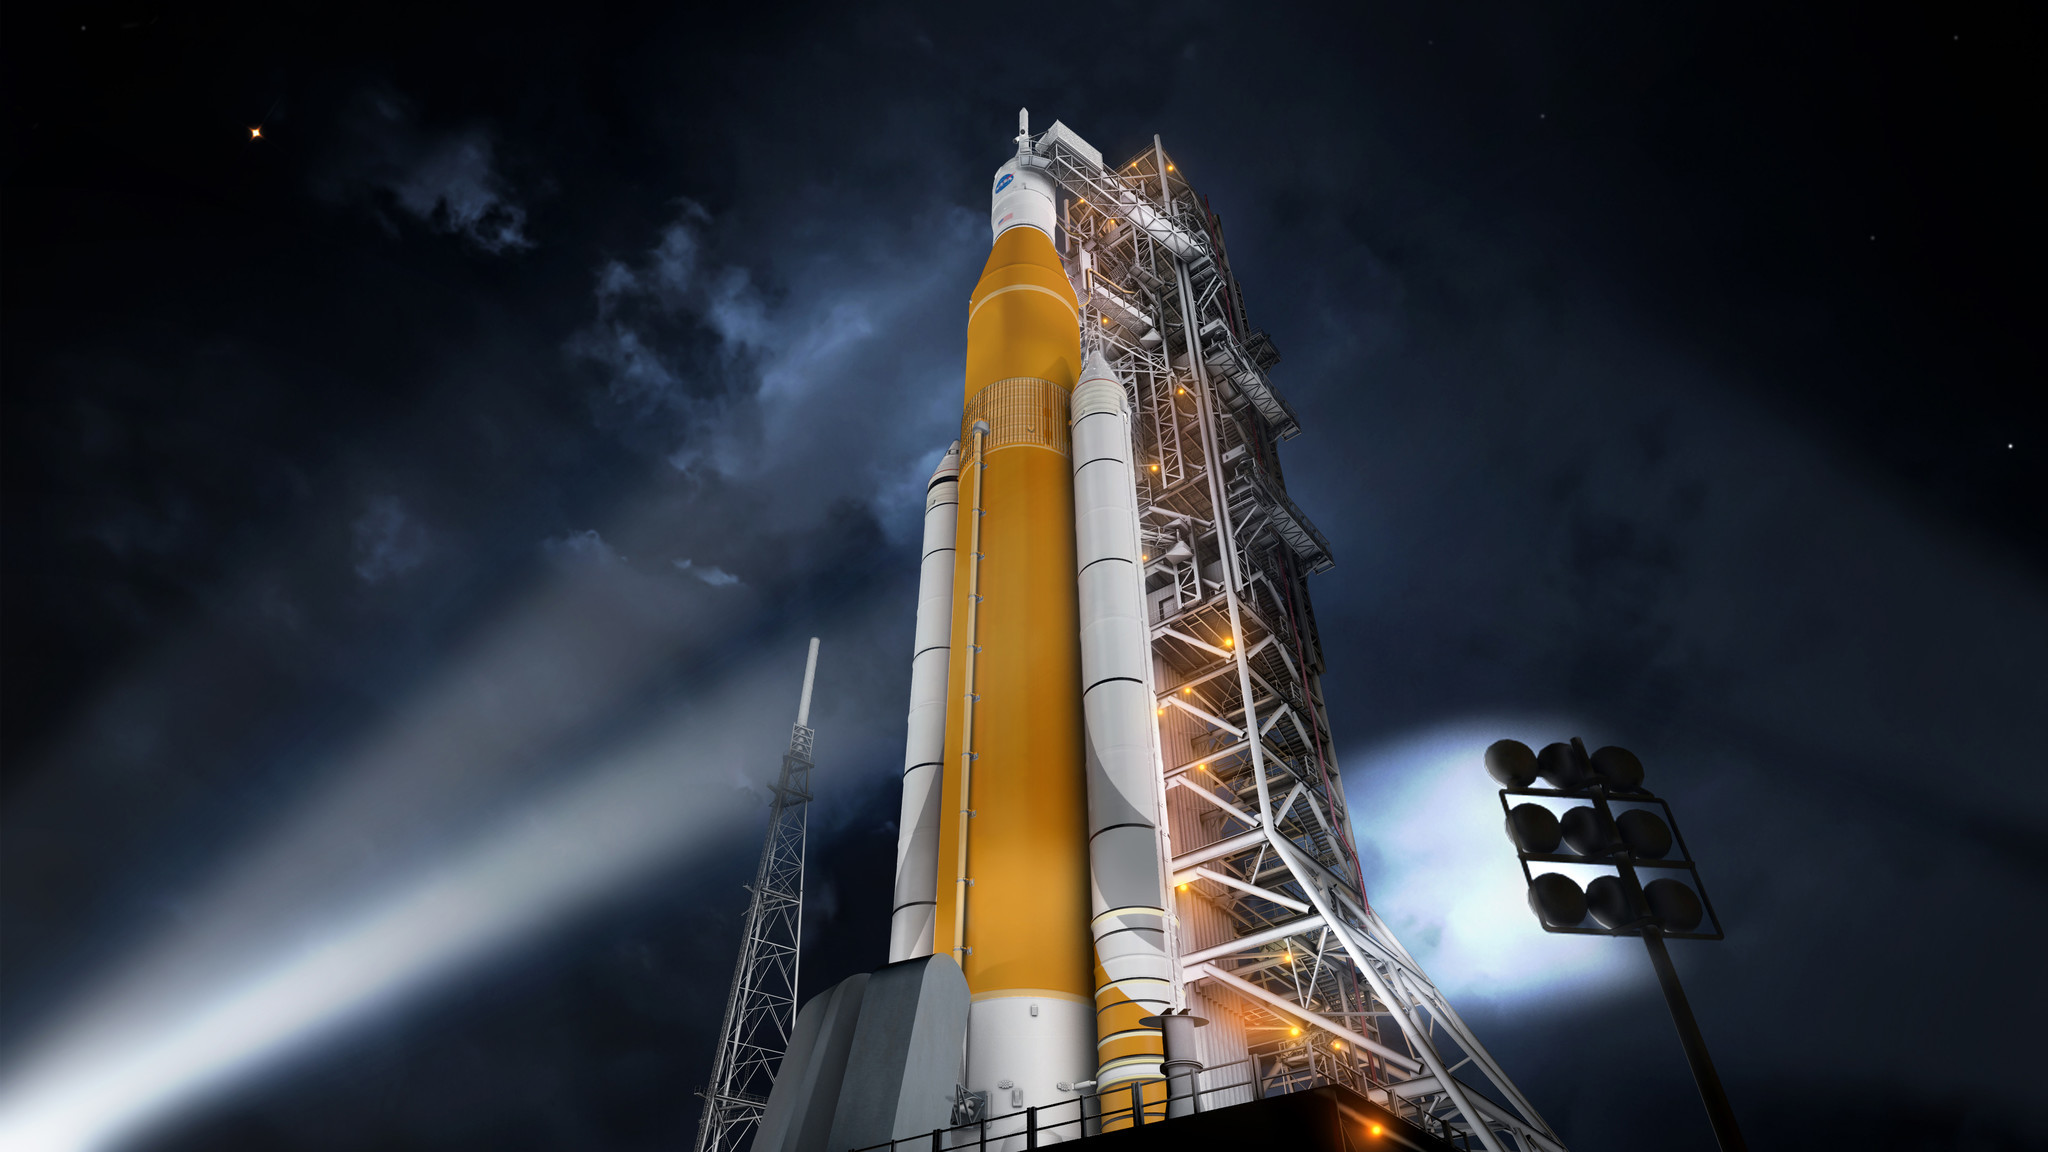 A new generation of giant rockets is about to blast off - Los Angeles Times